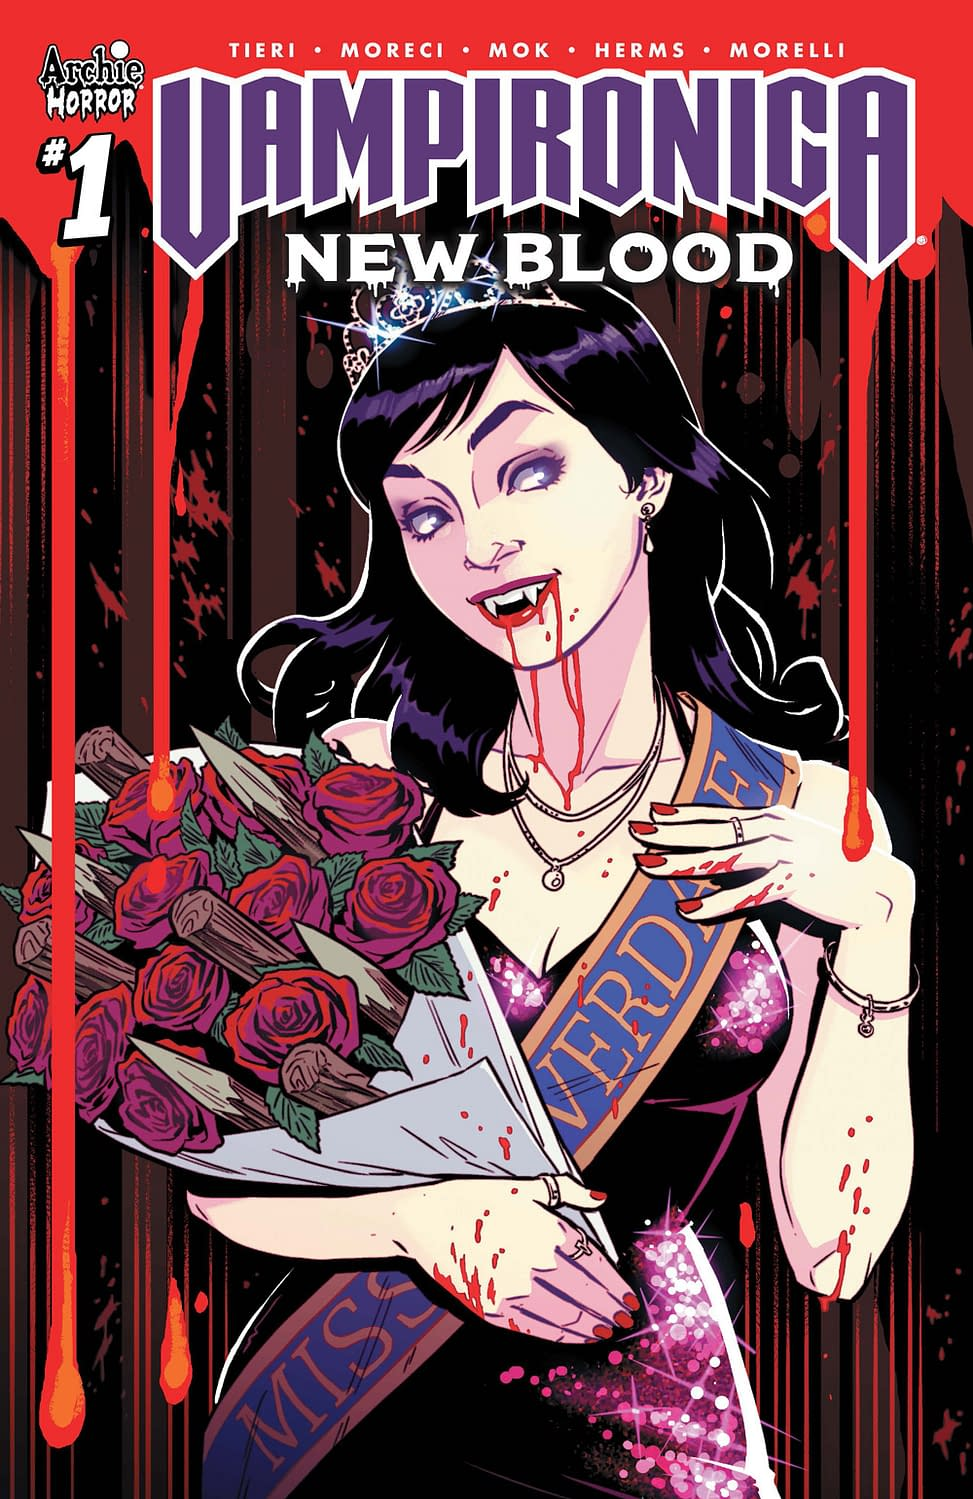 Vampironica: New Blood #1 Preview